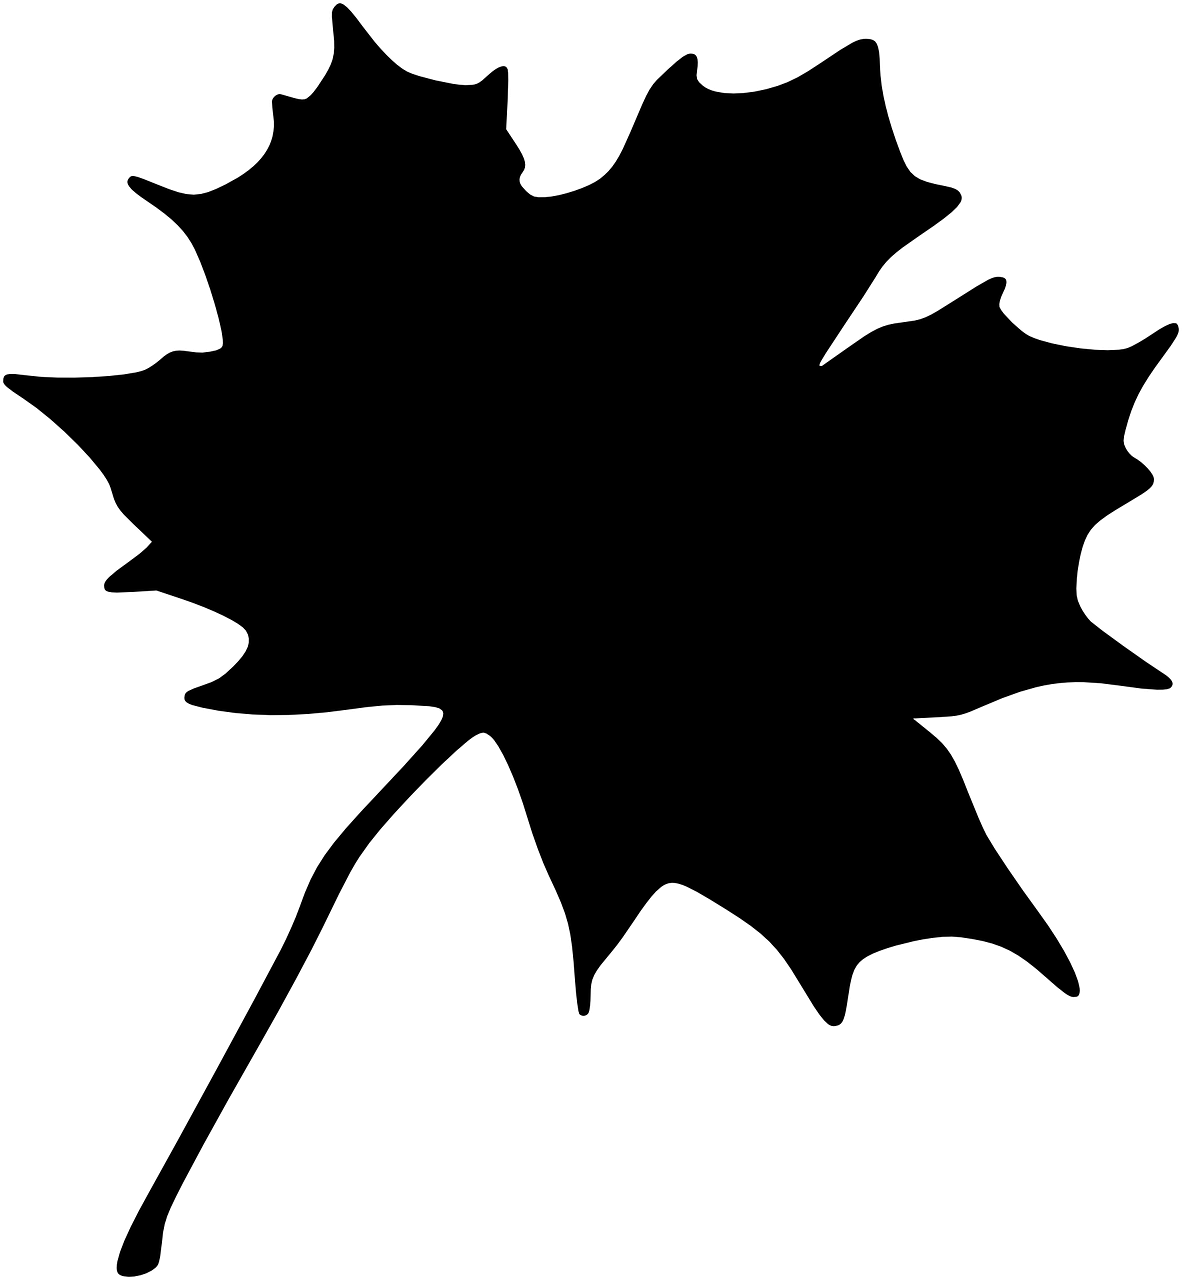 Clipart Maple Leaf Silhouette 2 Leaf Silhouette Silhouette Vector Silhouette